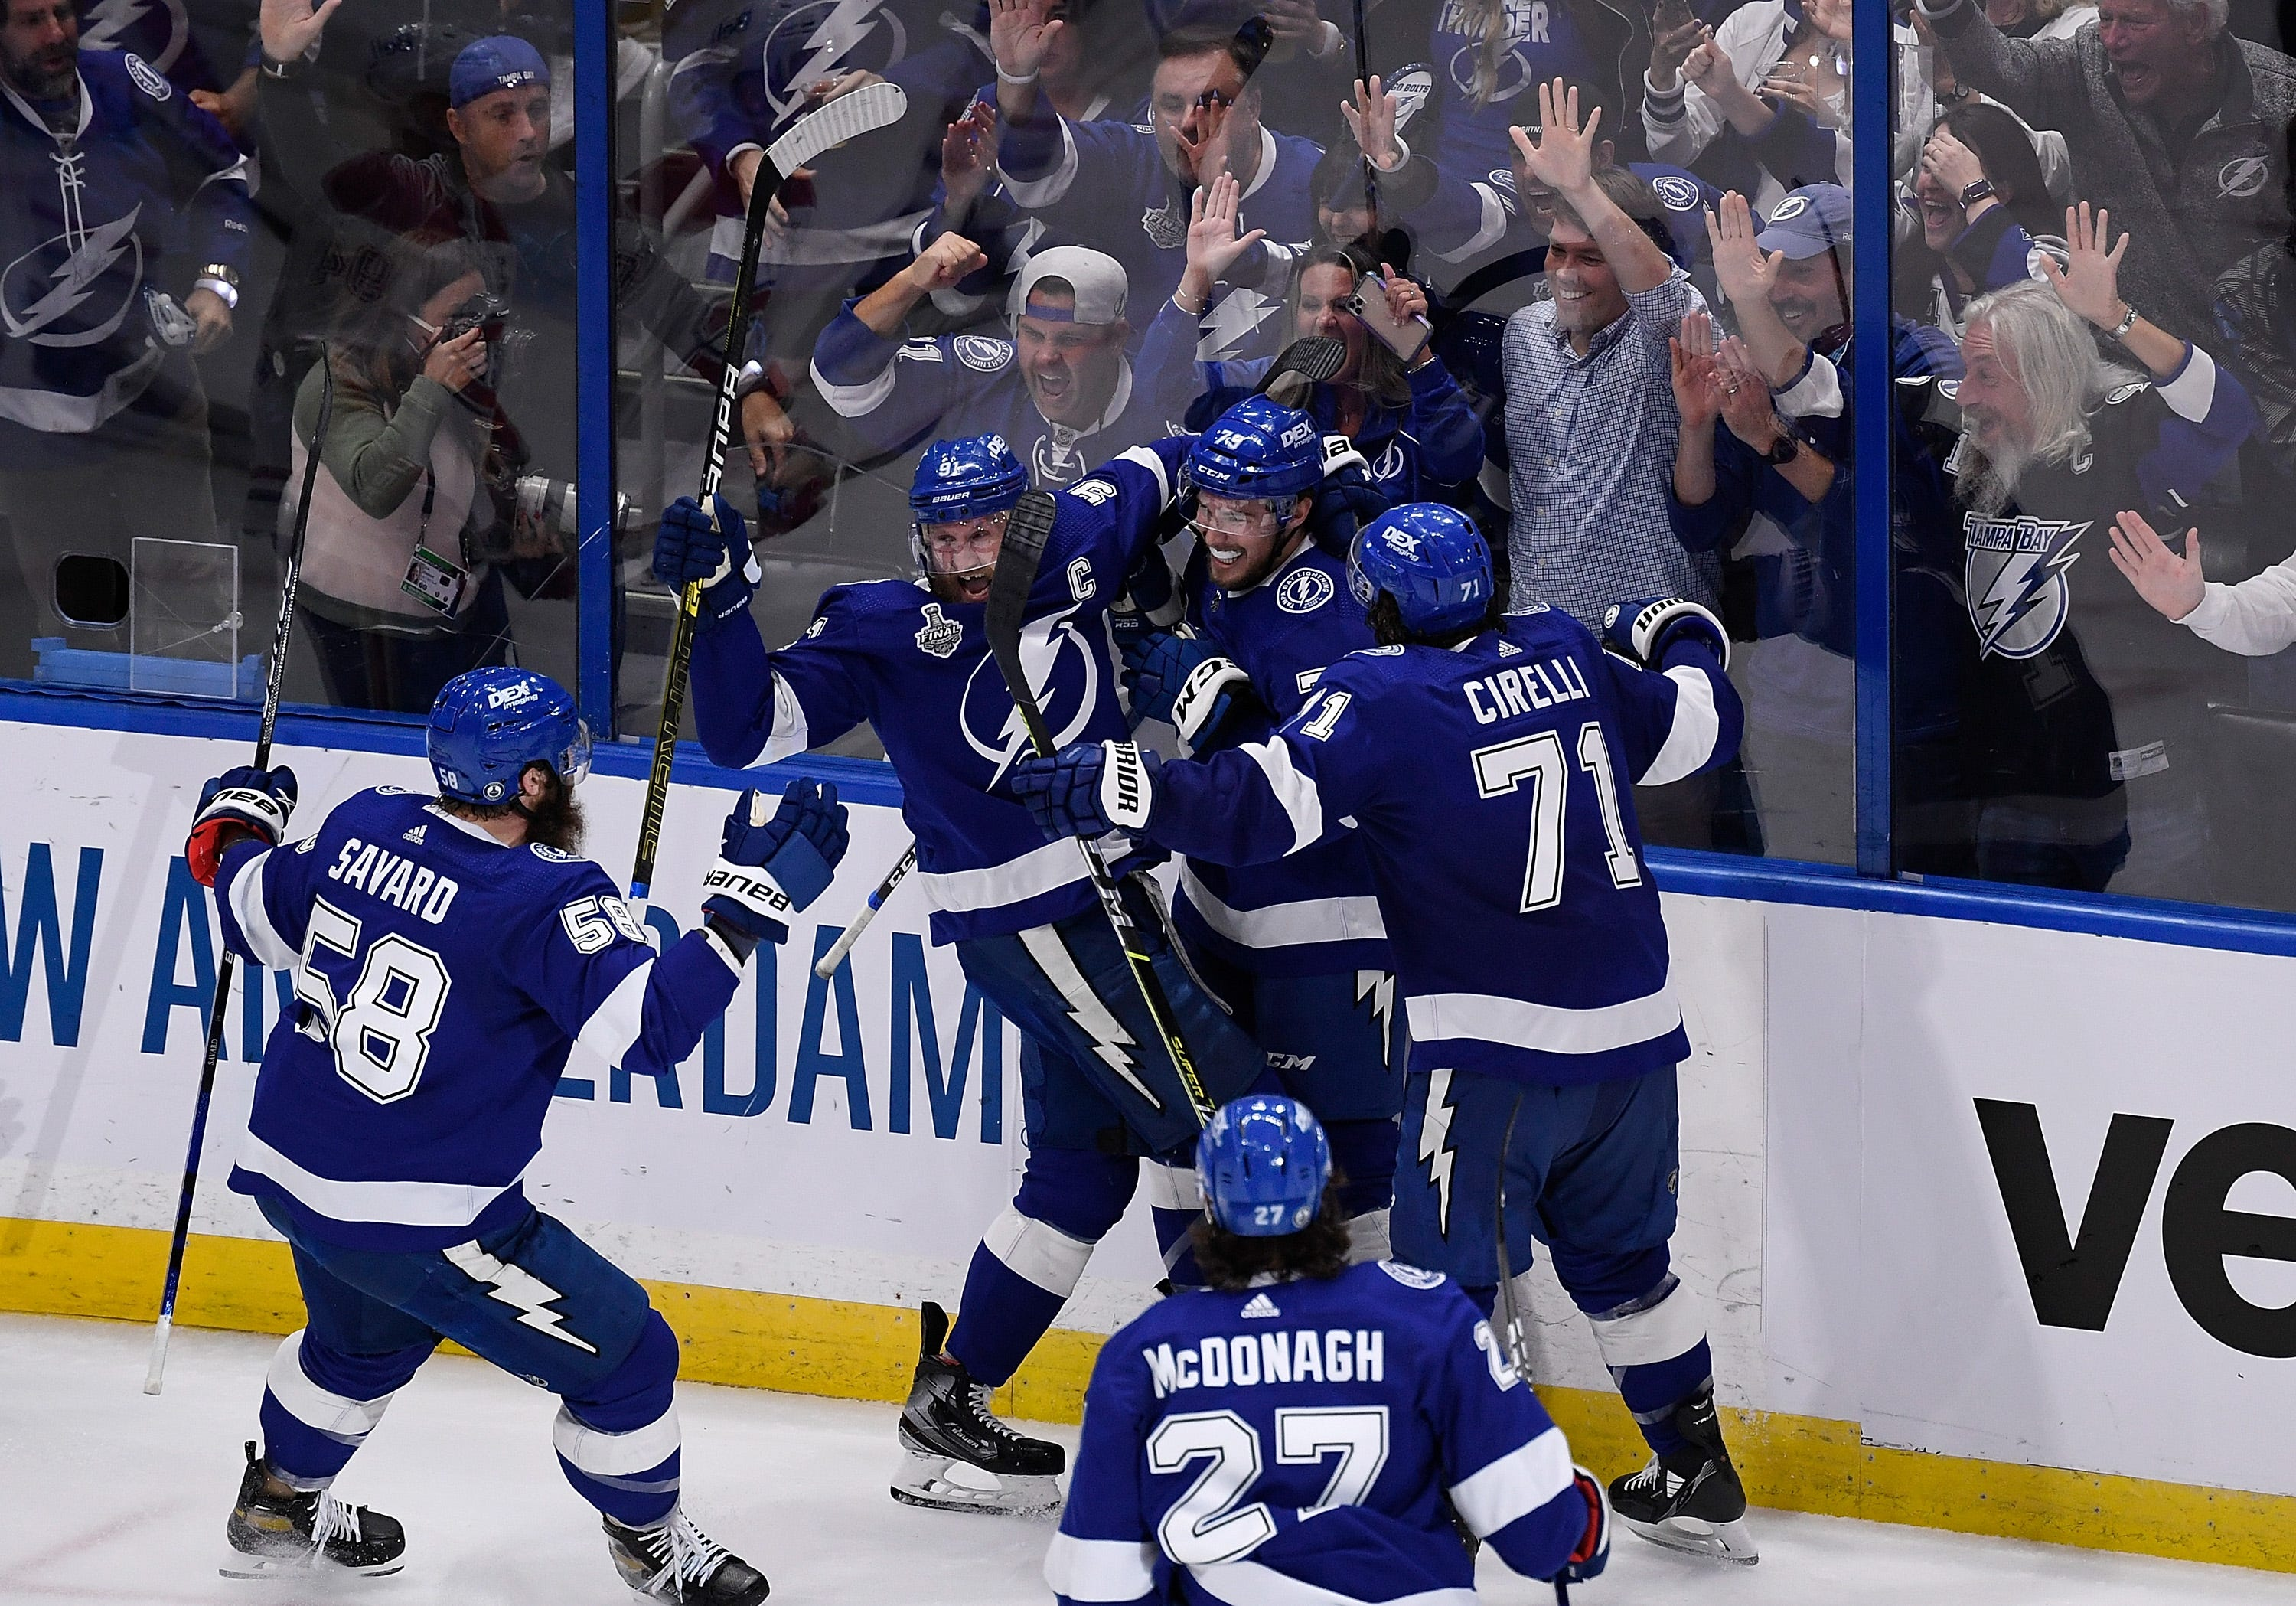 Tampa Bay Lightning repeat as Stanley Cup champions with Game 5 win against Montreal Canadiens